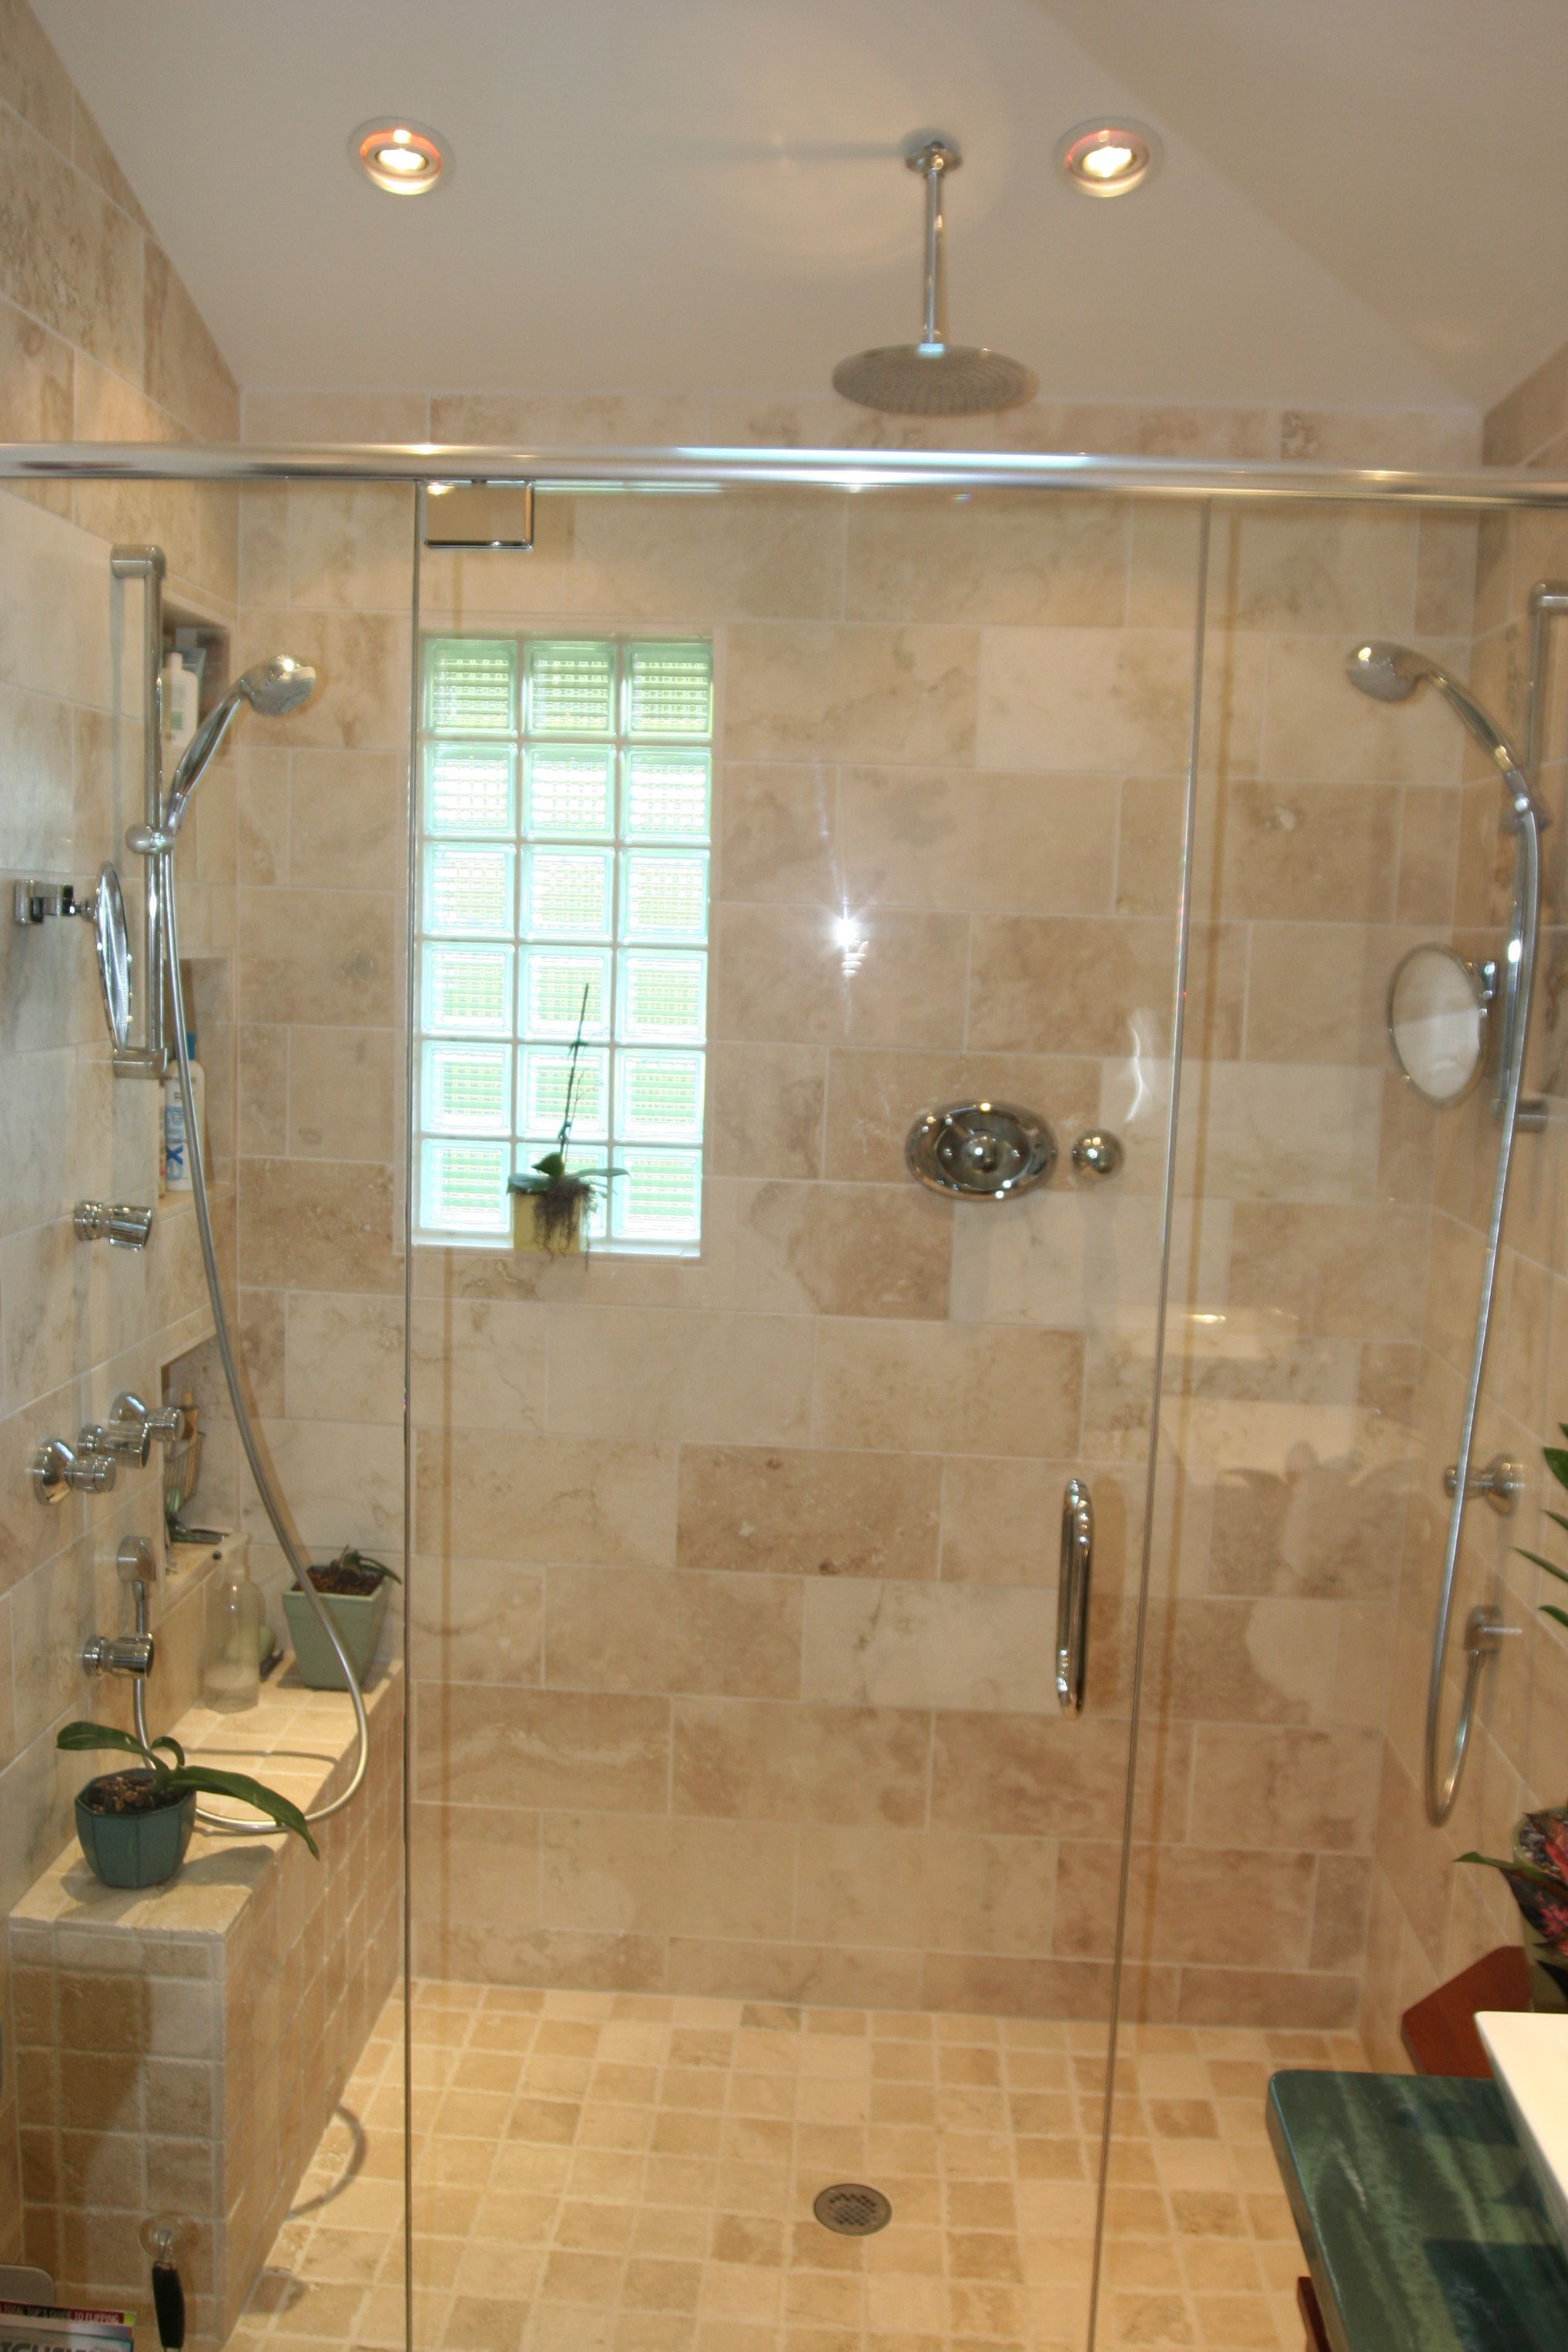 Pin By At Home With Lauren B Montana On Things I Love Bathrooms Remodel Bathroom Window Glass Glass Block Windows